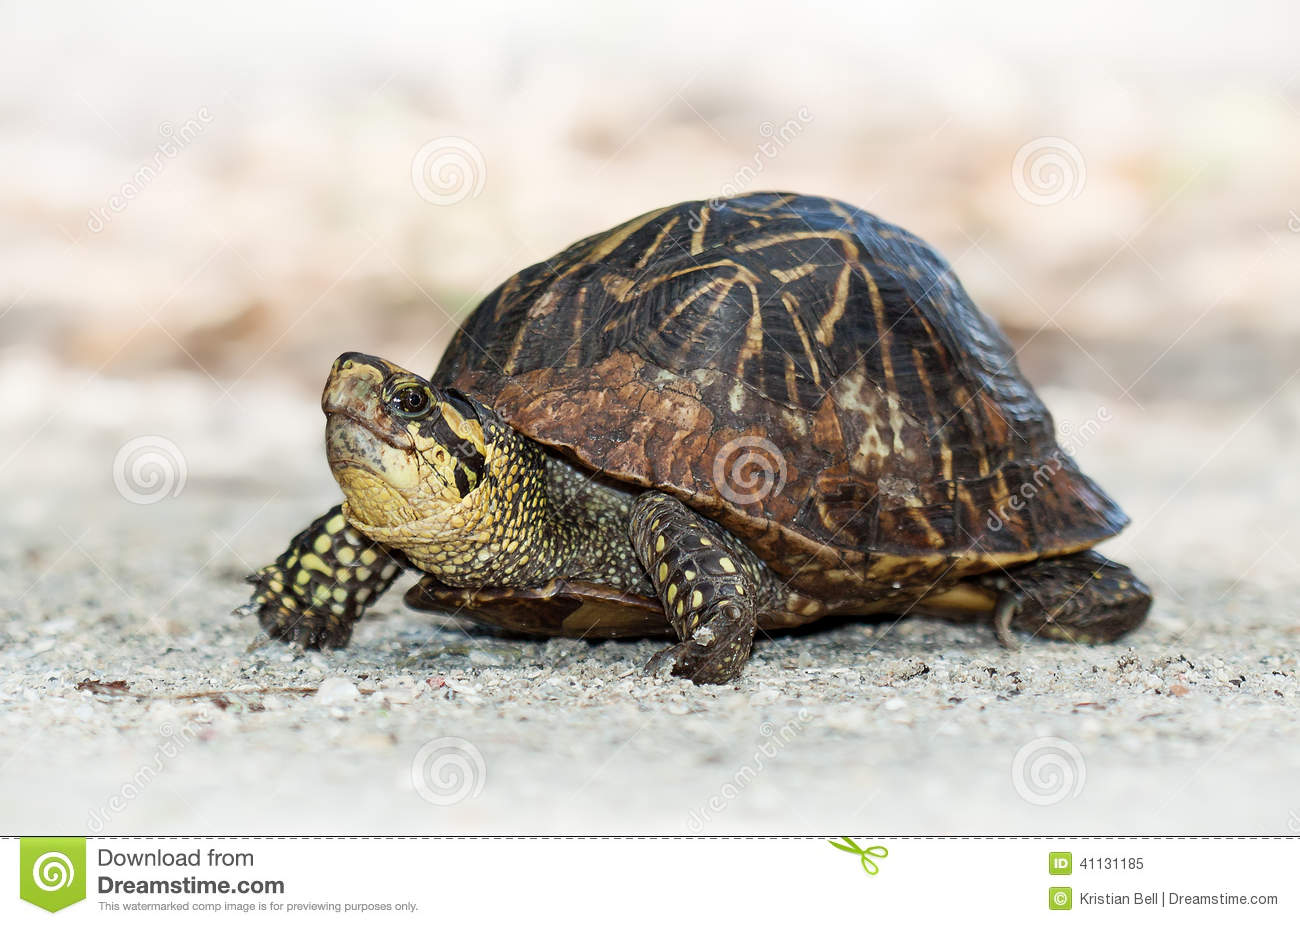 Florida Box Turtle (Terrapene Carolina Bauri) Stock Photo.